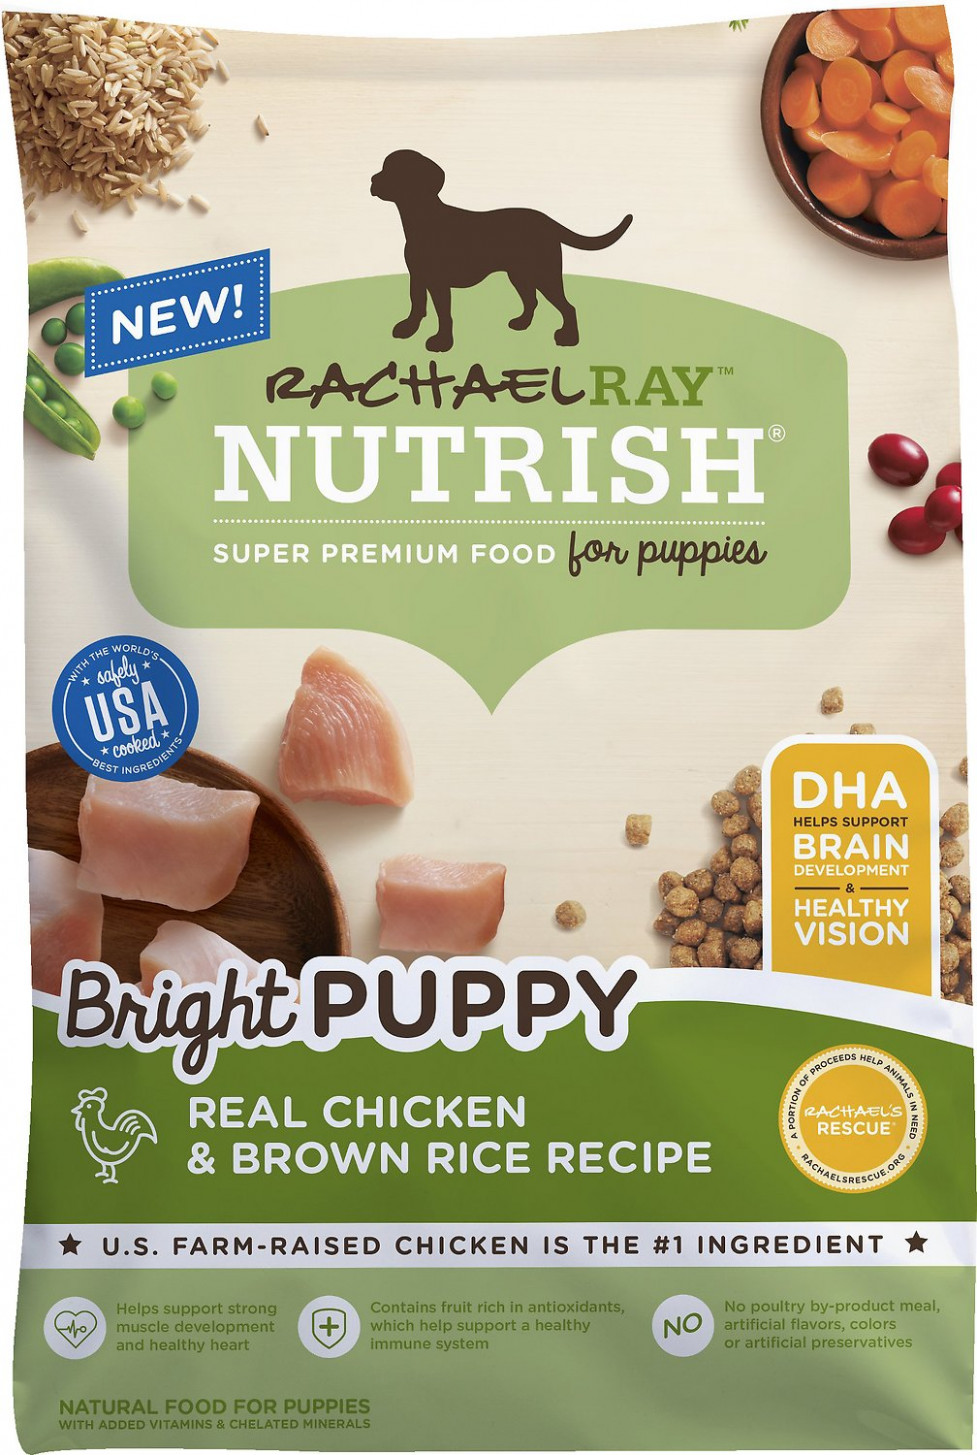 Rachael Ray Nutrish Bright Puppy Natural Real Chicken & Brown Rice Recipe  Dry Dog Food, 14-lb bag - puppy food recipes